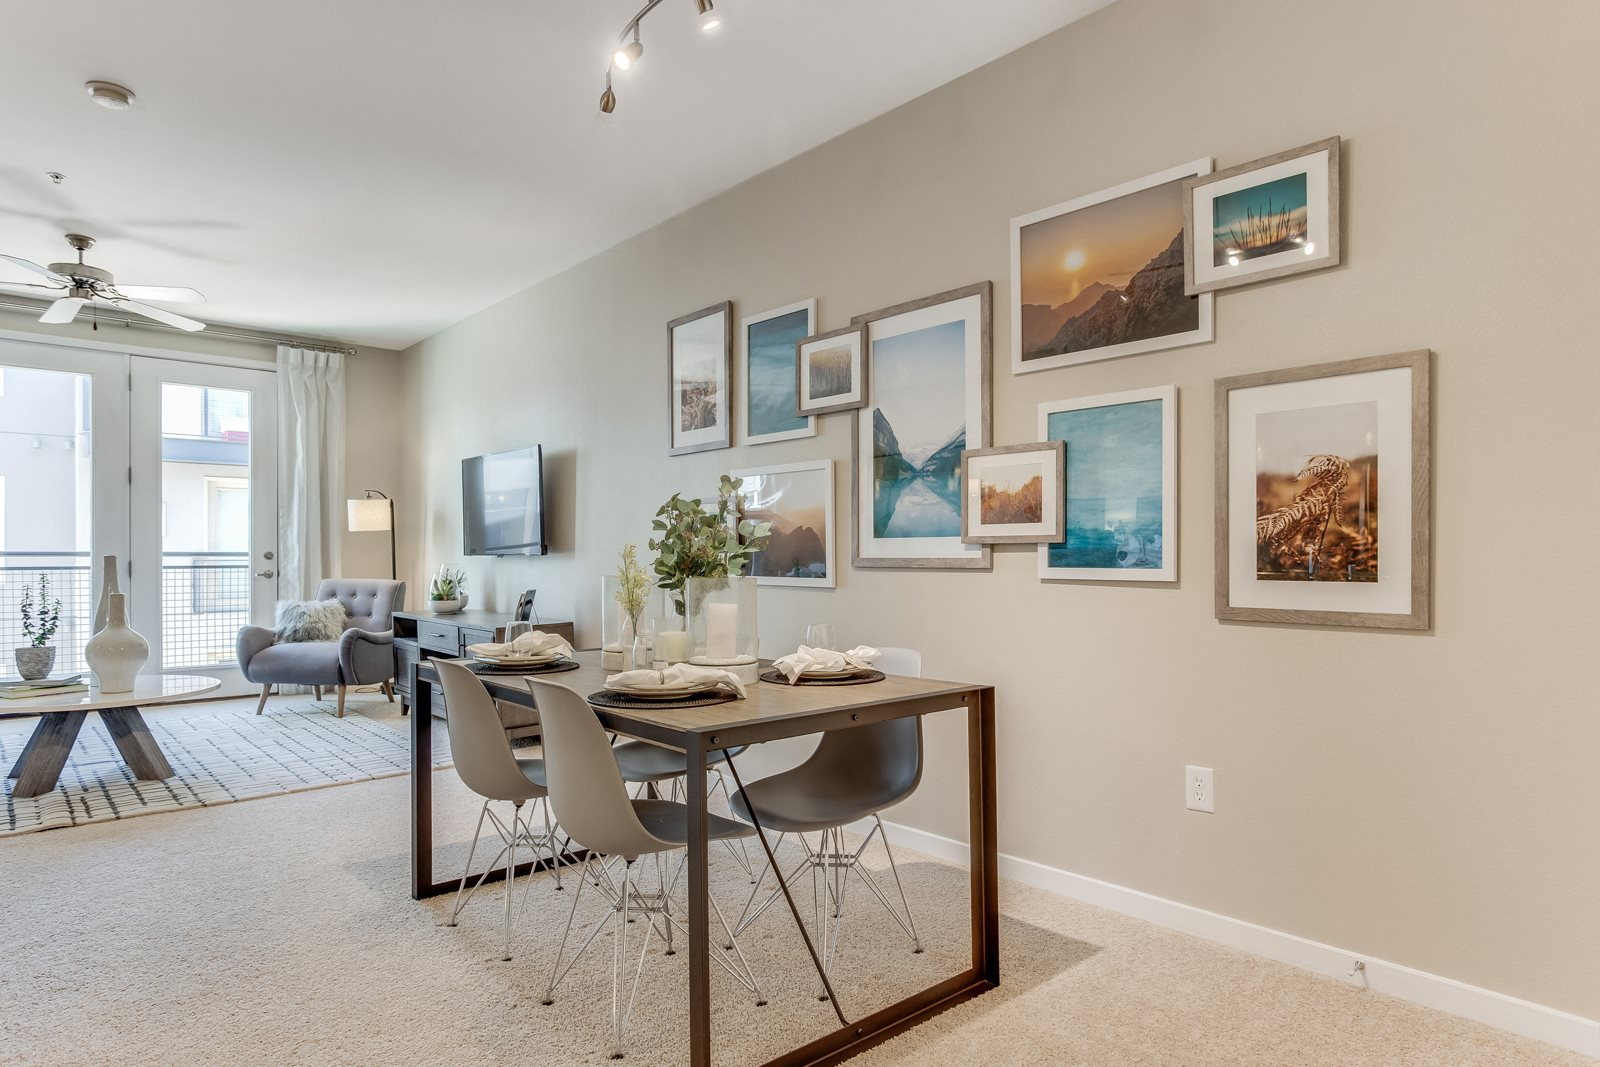 Make ample space work for your lifestyle at The District, Denver